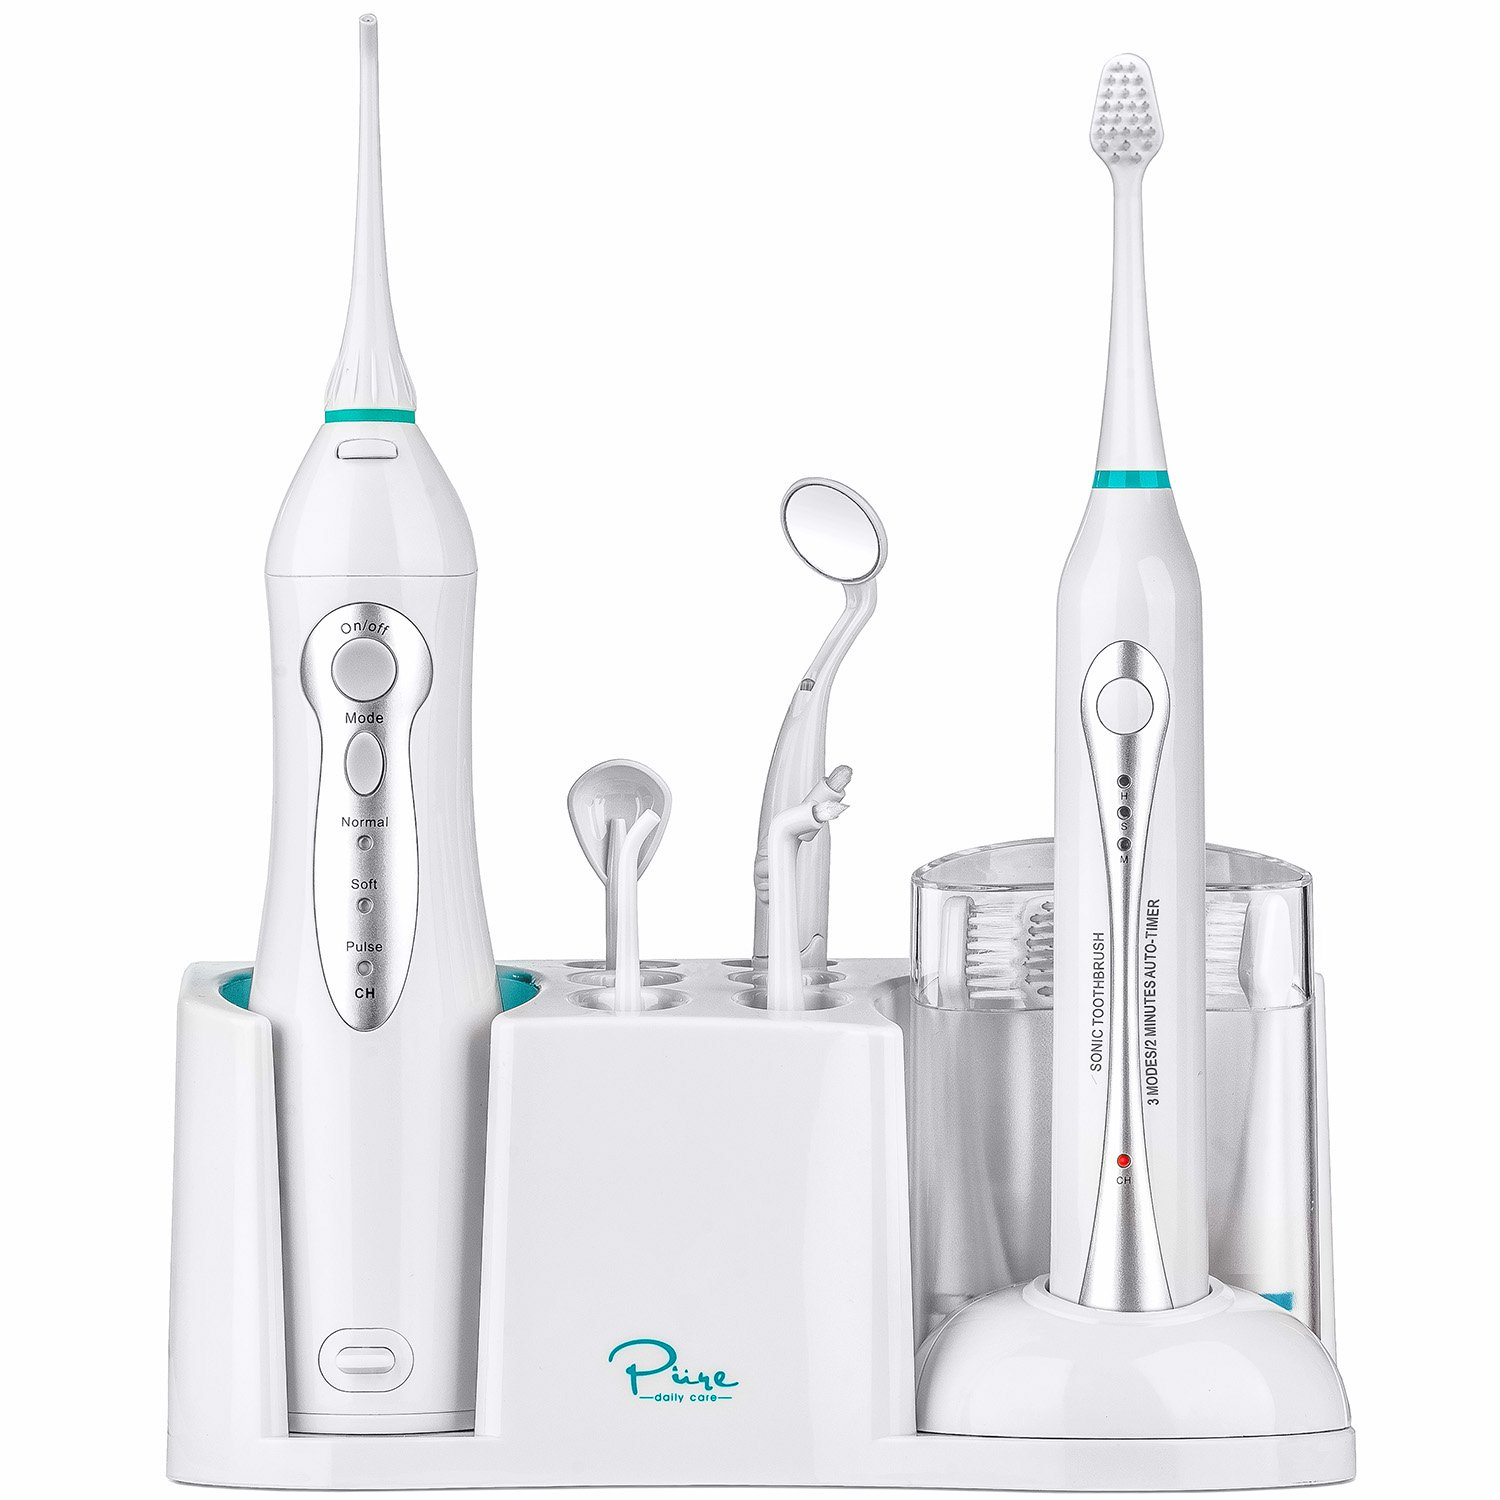 Home Dental Center - Ultra Sonic Electric Toothbrush & Smart Water Flosser - Complete Family Oral Care System - Rechargeable - 10 Attachments and Tips Included - Various Modes & Timers